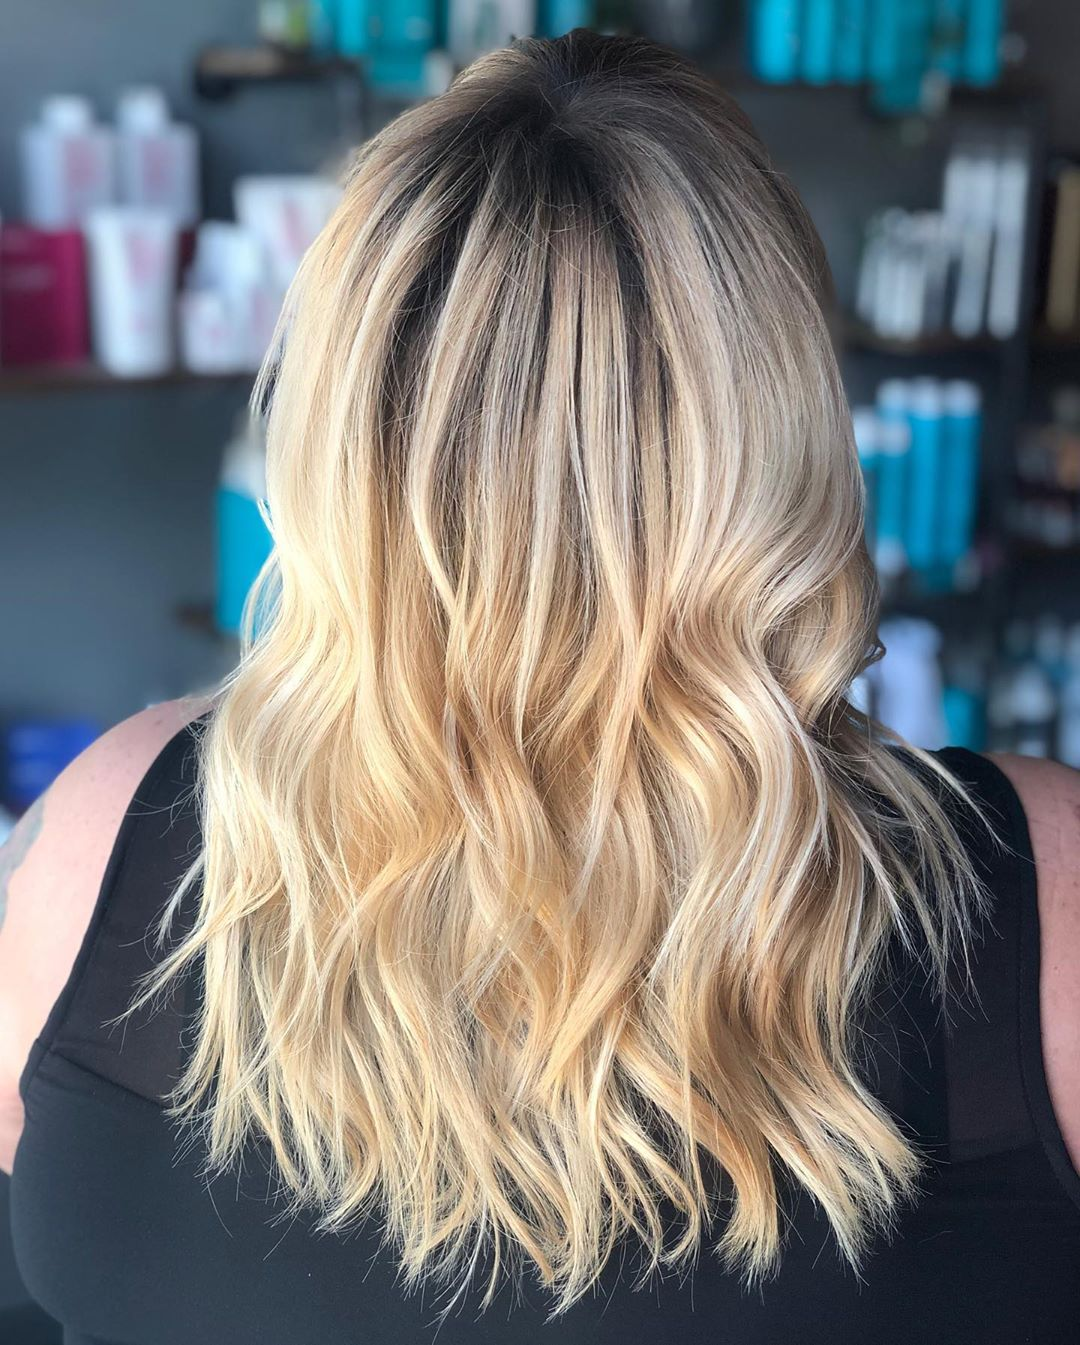 balayage ombre hairstyles 2 9 New Blonde Balayage Hairstyles You'll Love!